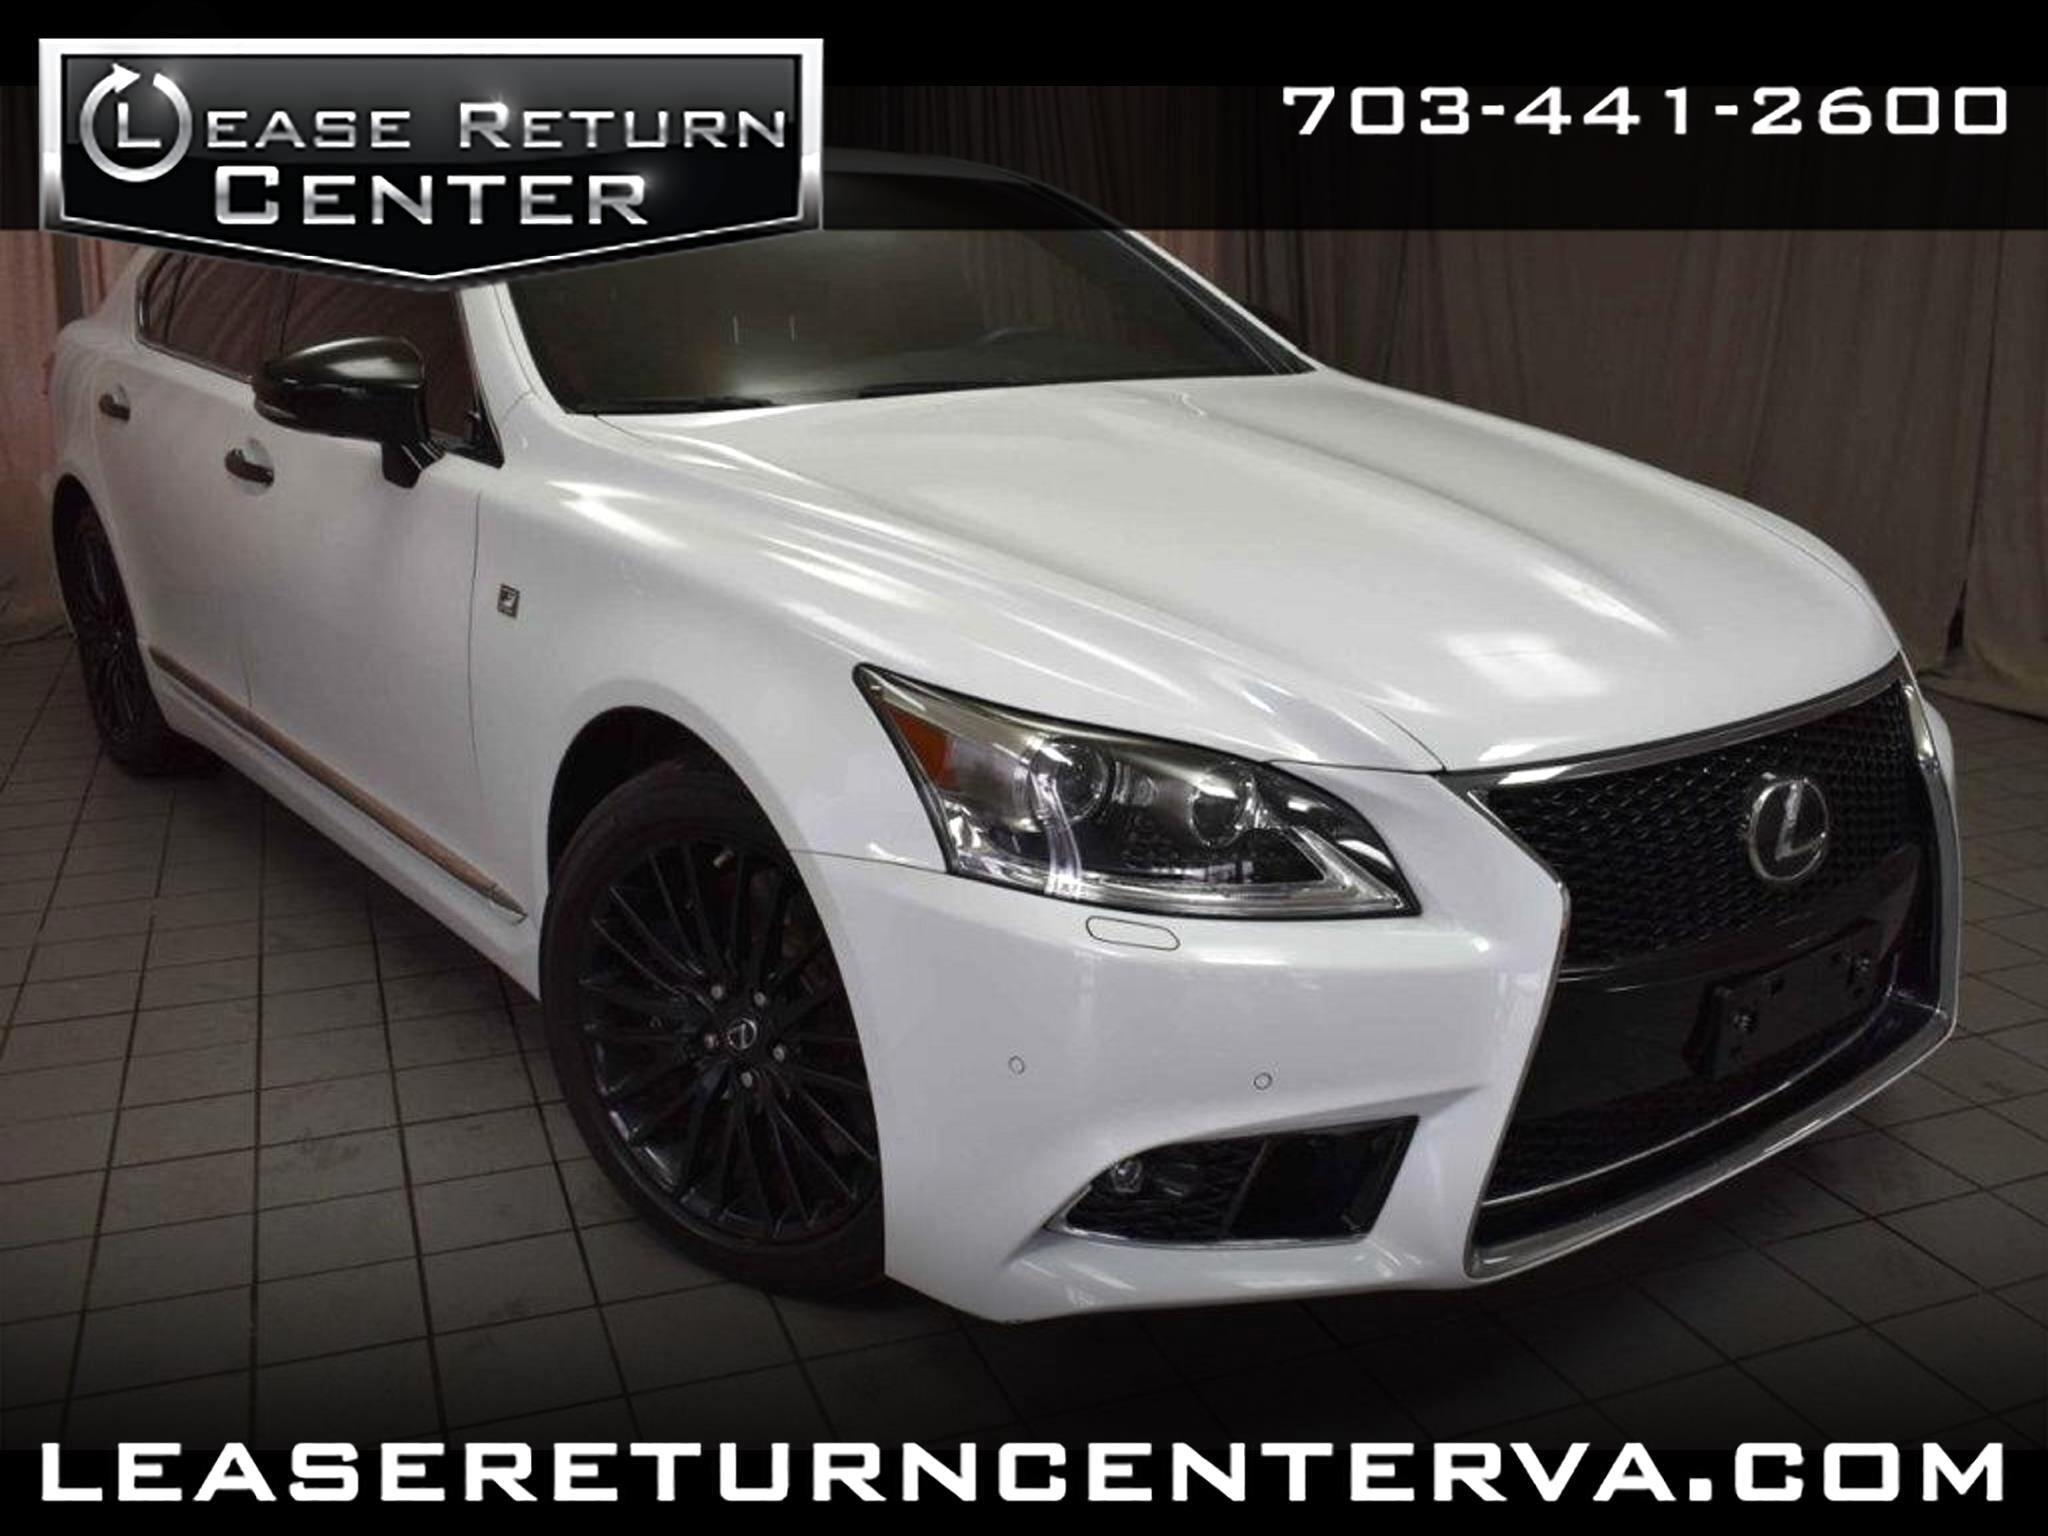 2015 Lexus LS 460 4dr Sdn Crafted Line RWD